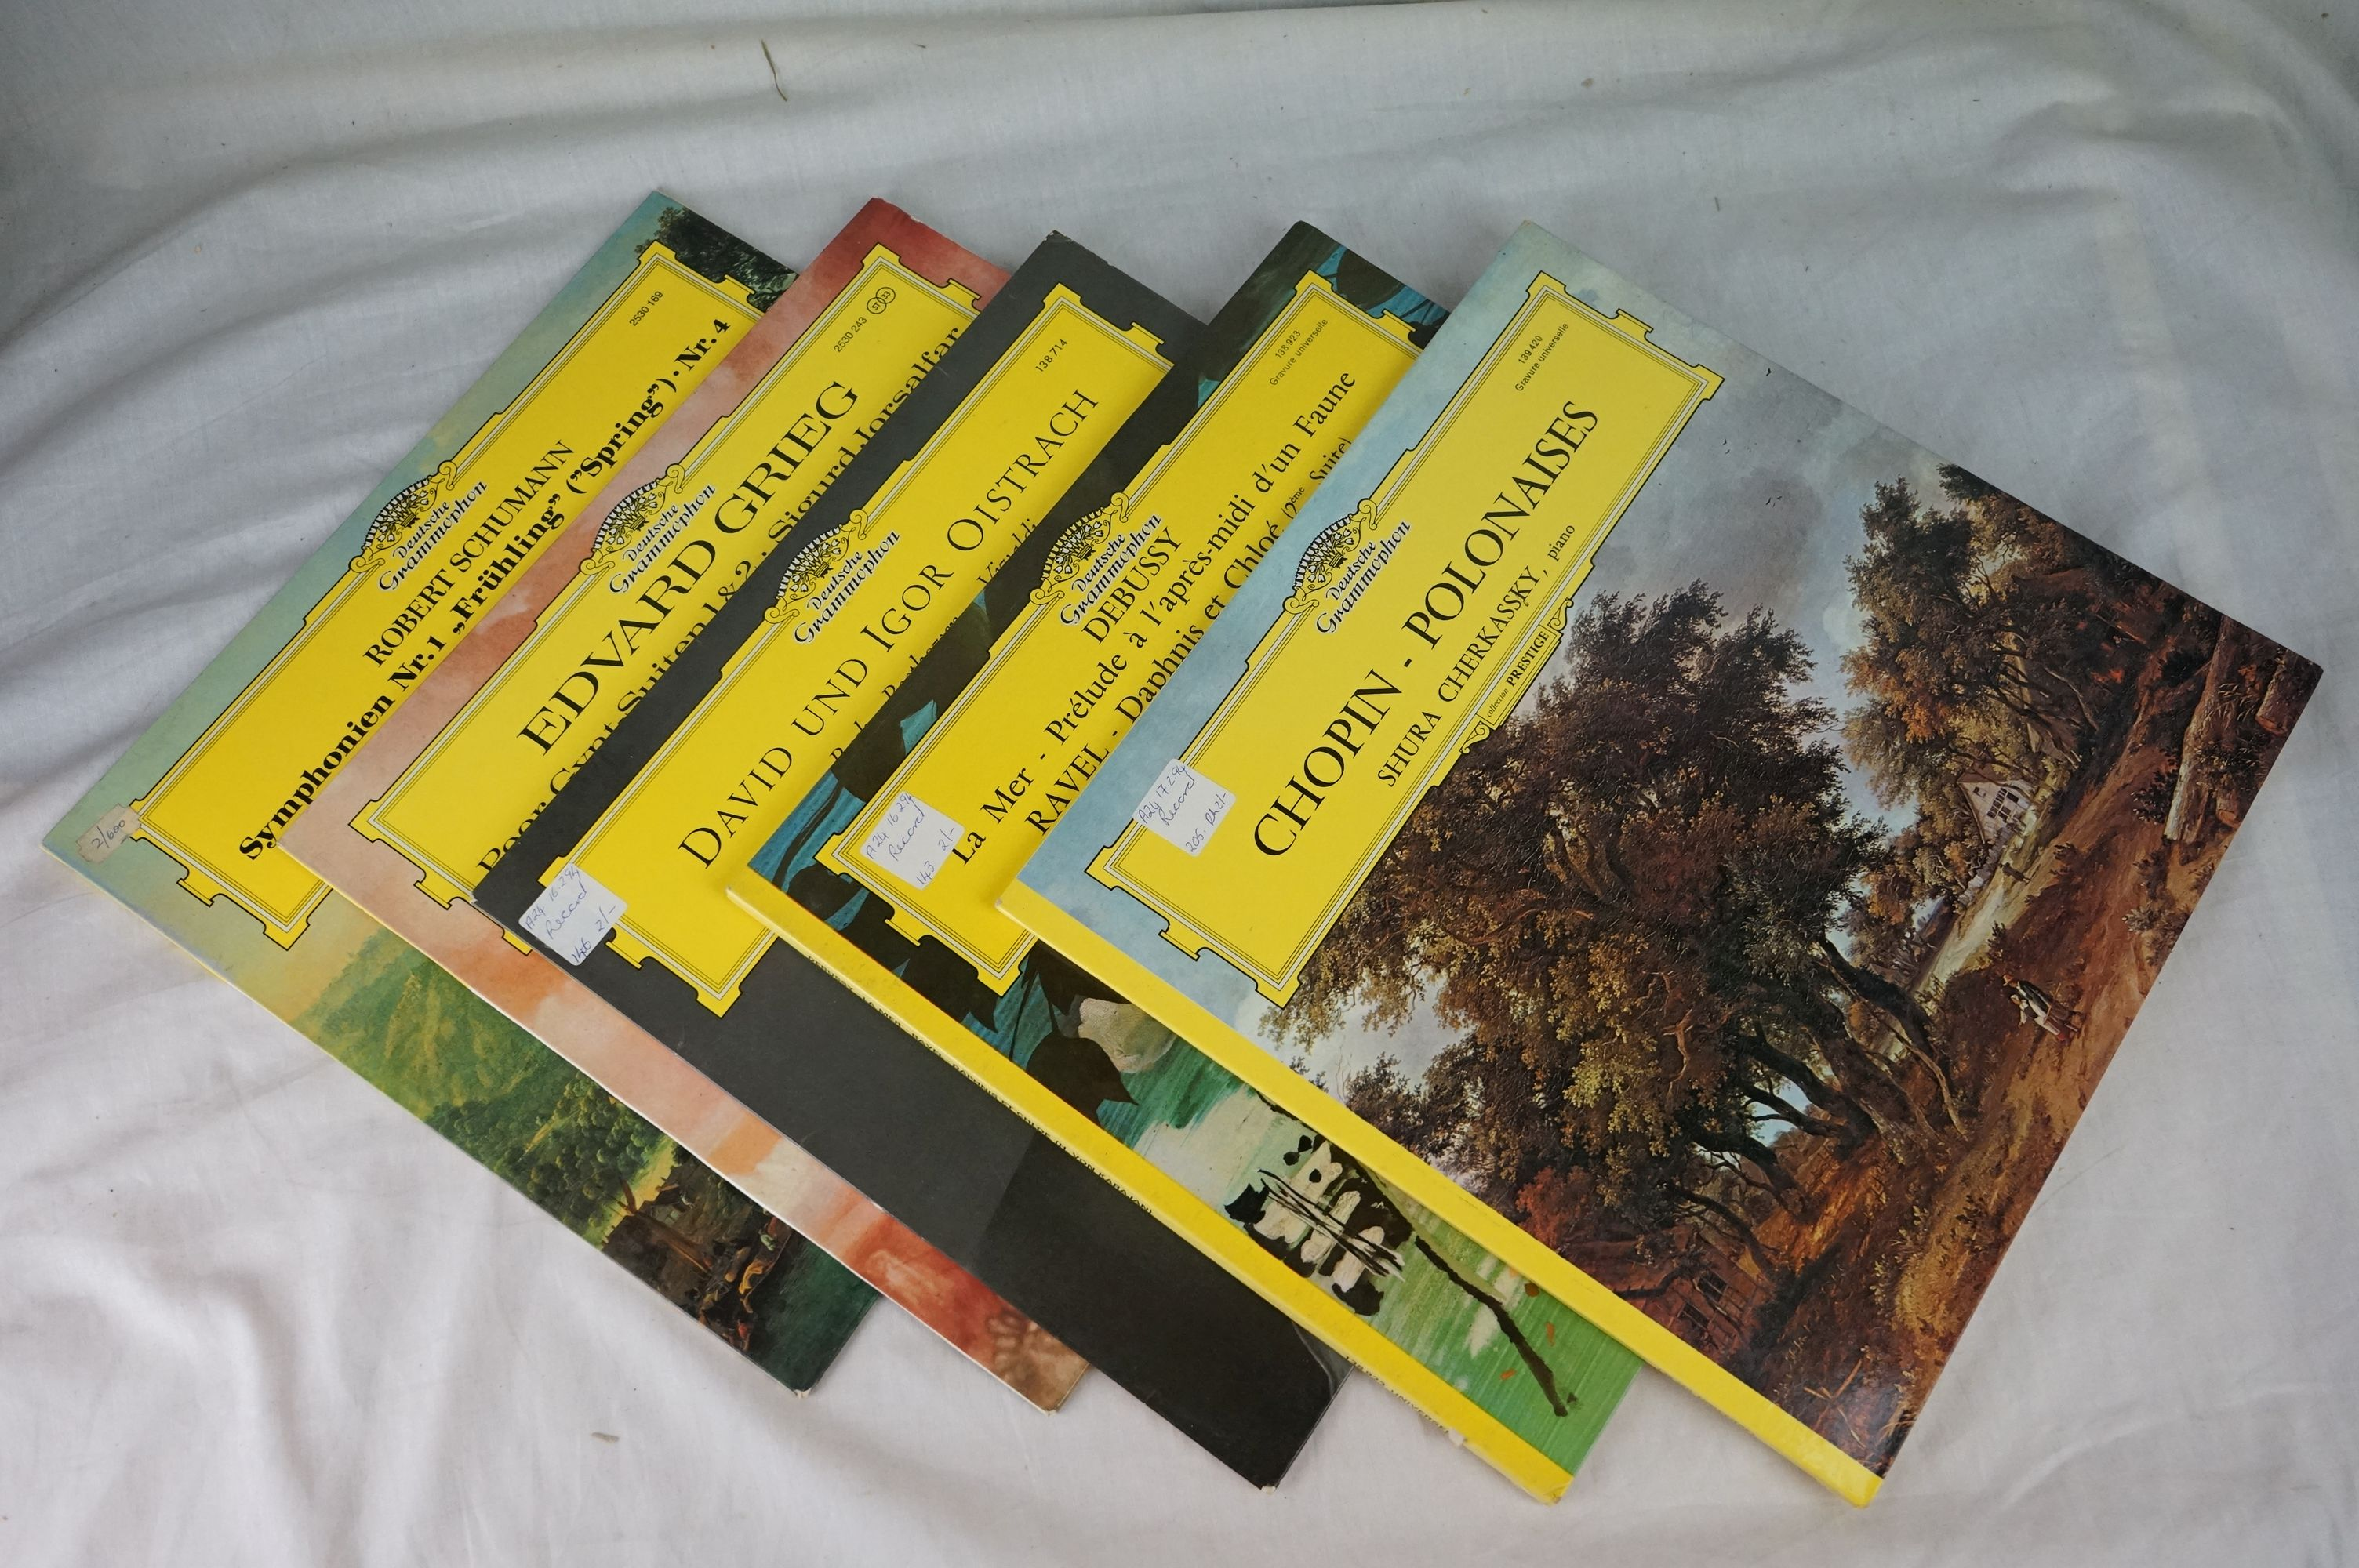 Vinyl - Classical approx 40 LP's to include several Deutsche Grammophon releases. Condition of - Image 3 of 5